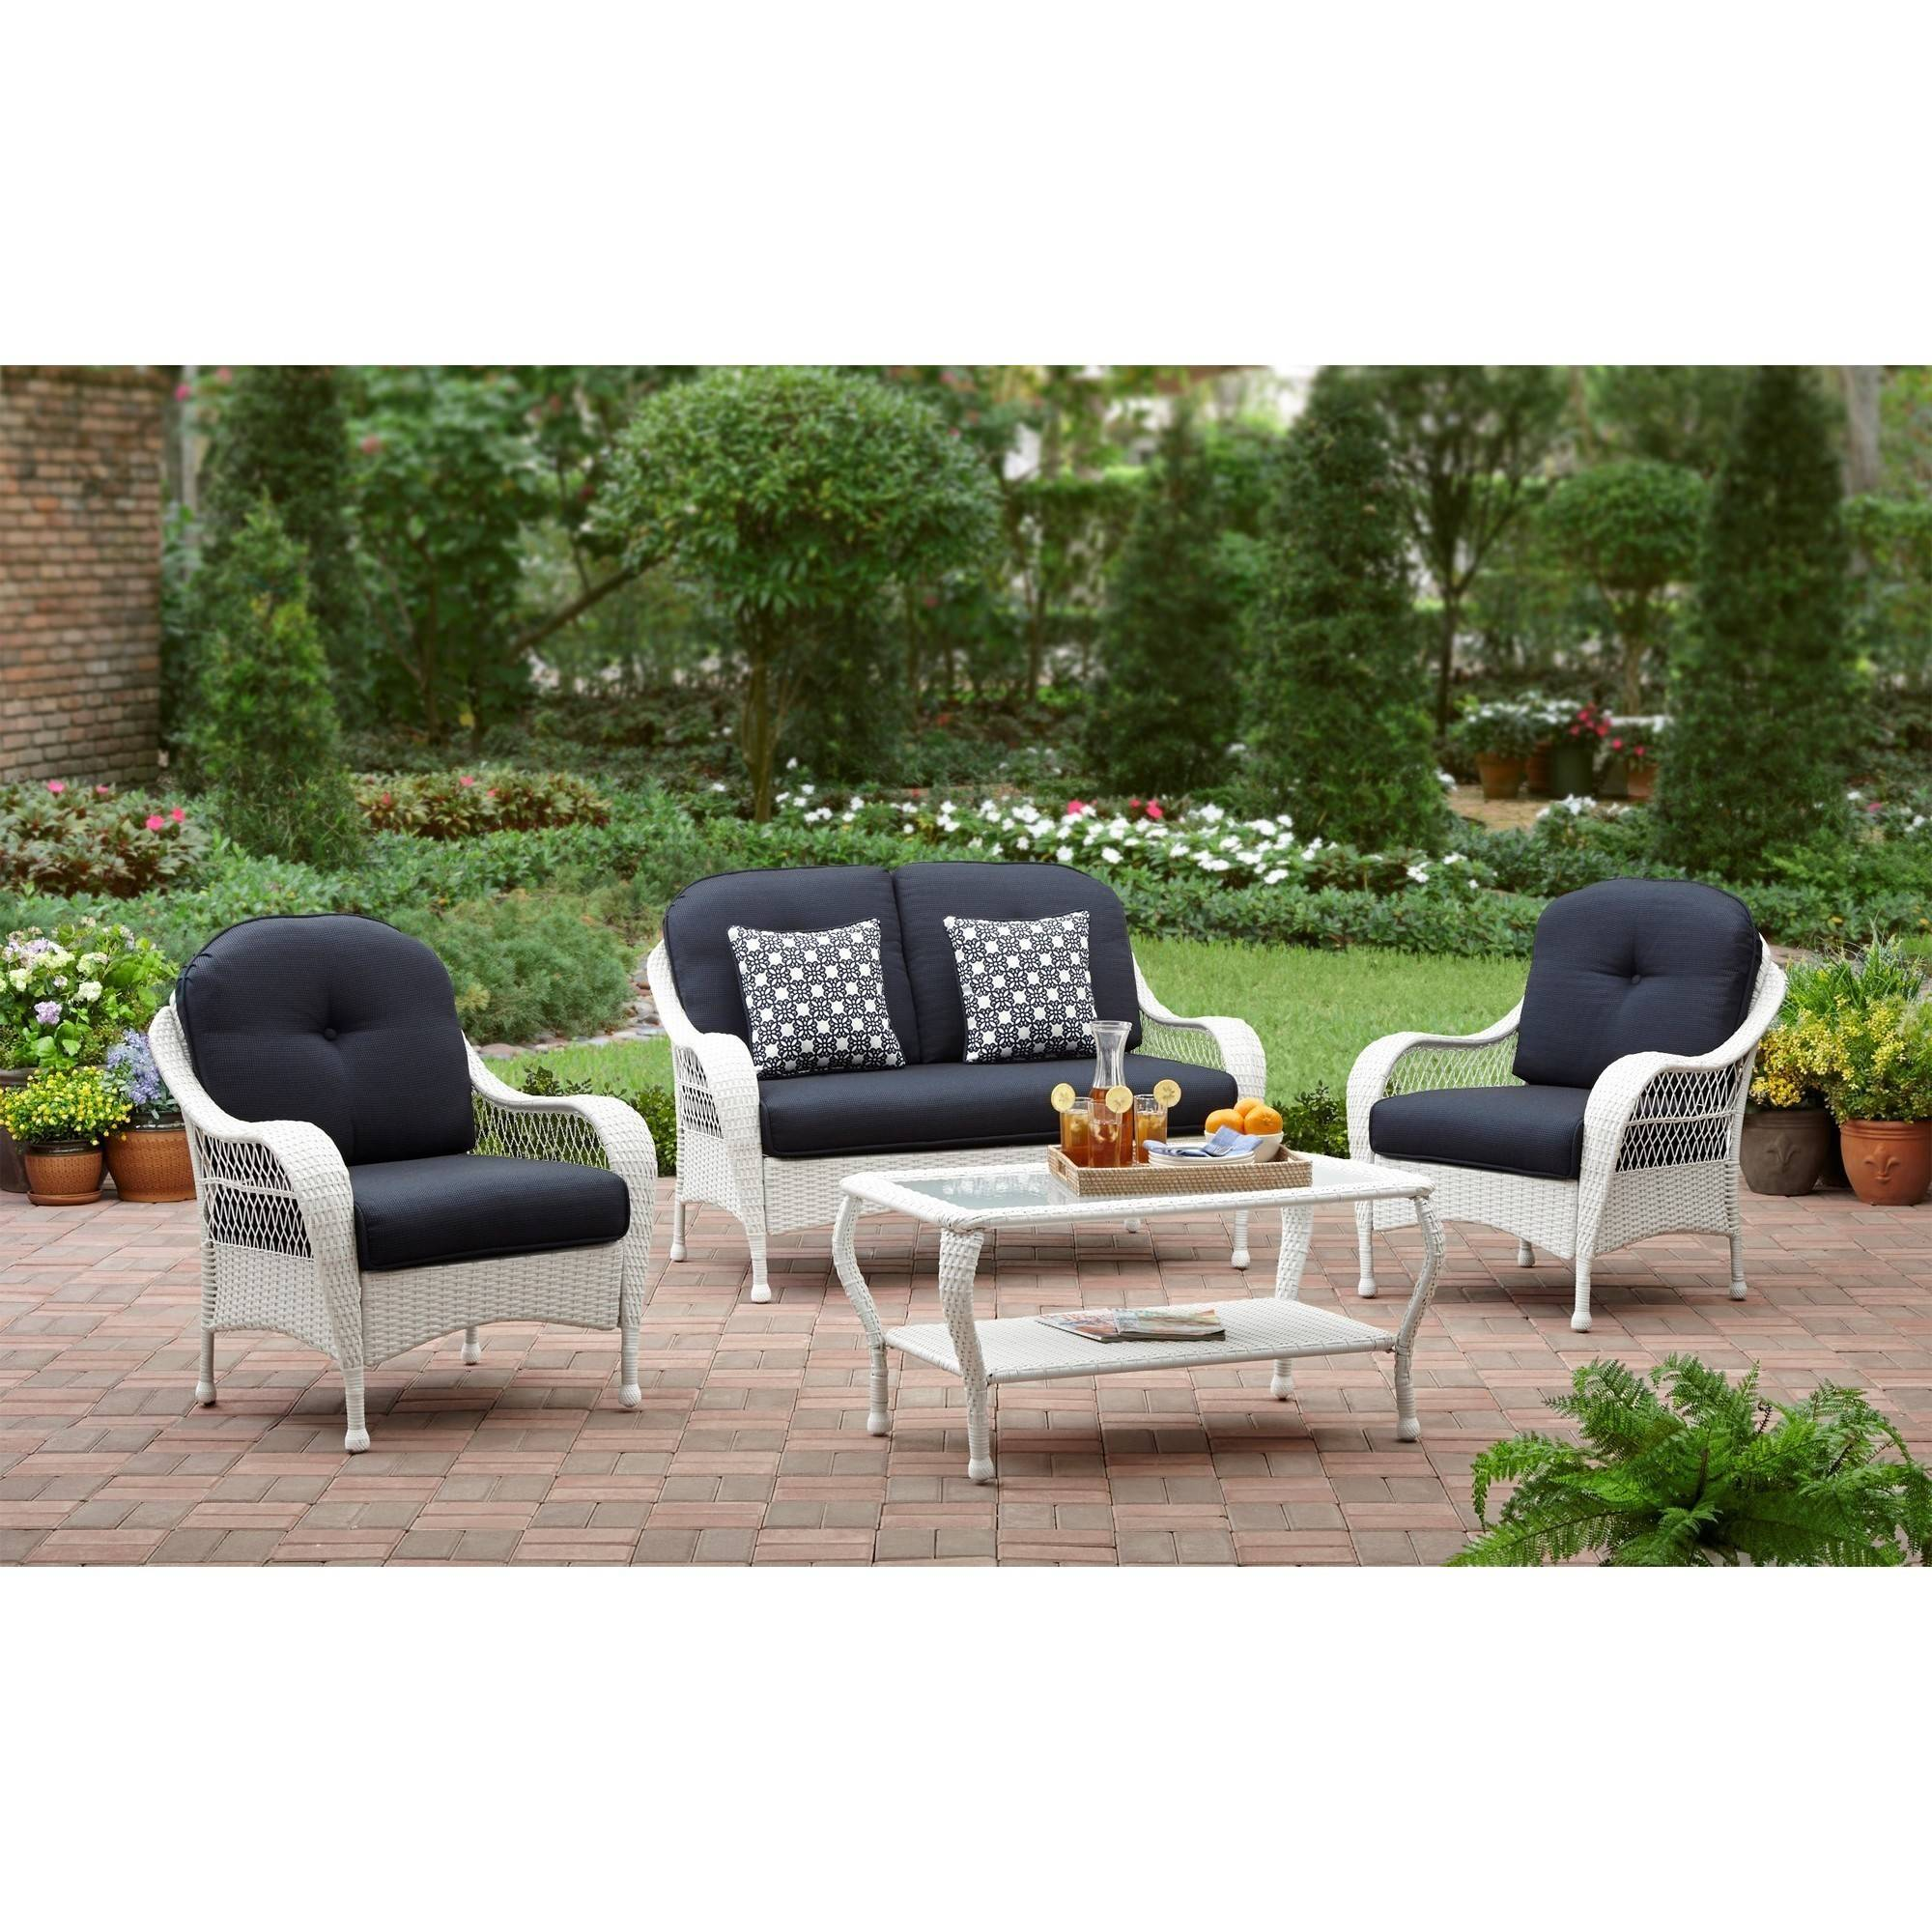 Better Homes Gardens Azalea Ridge Outdoor Patio Conversation Set